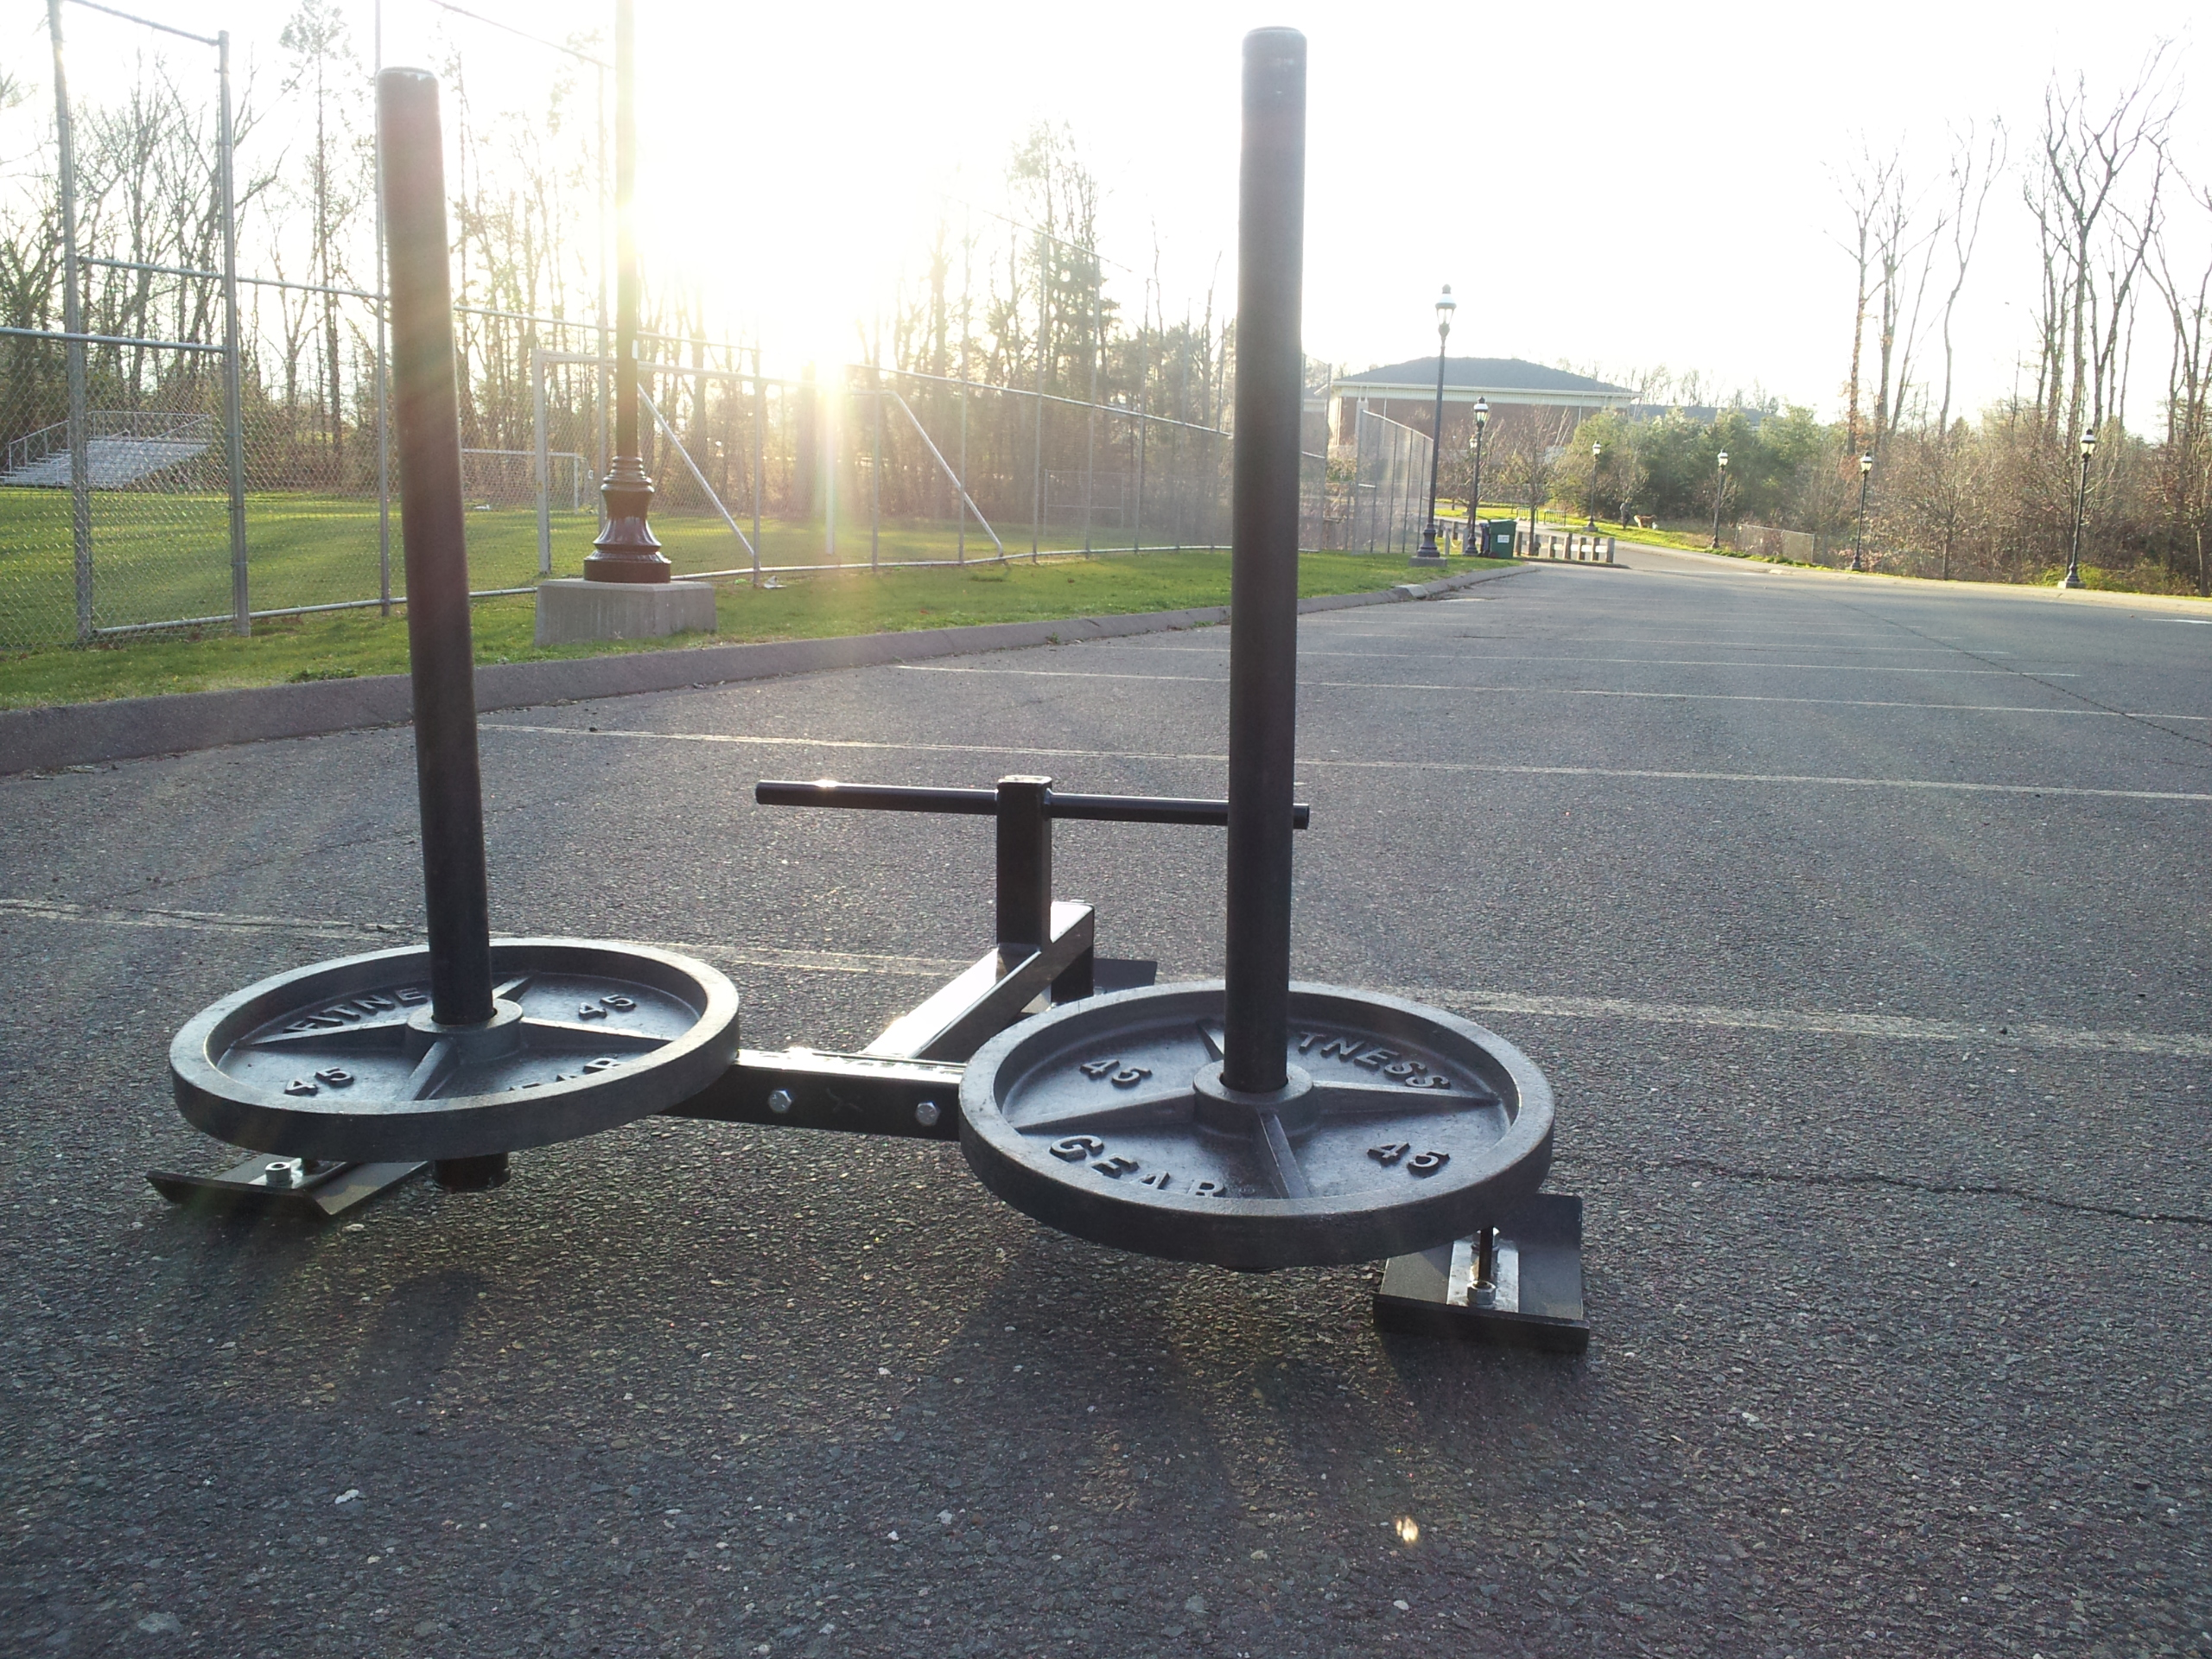 Life Lessons From the Prowler Part 1: Consistency of Conditions